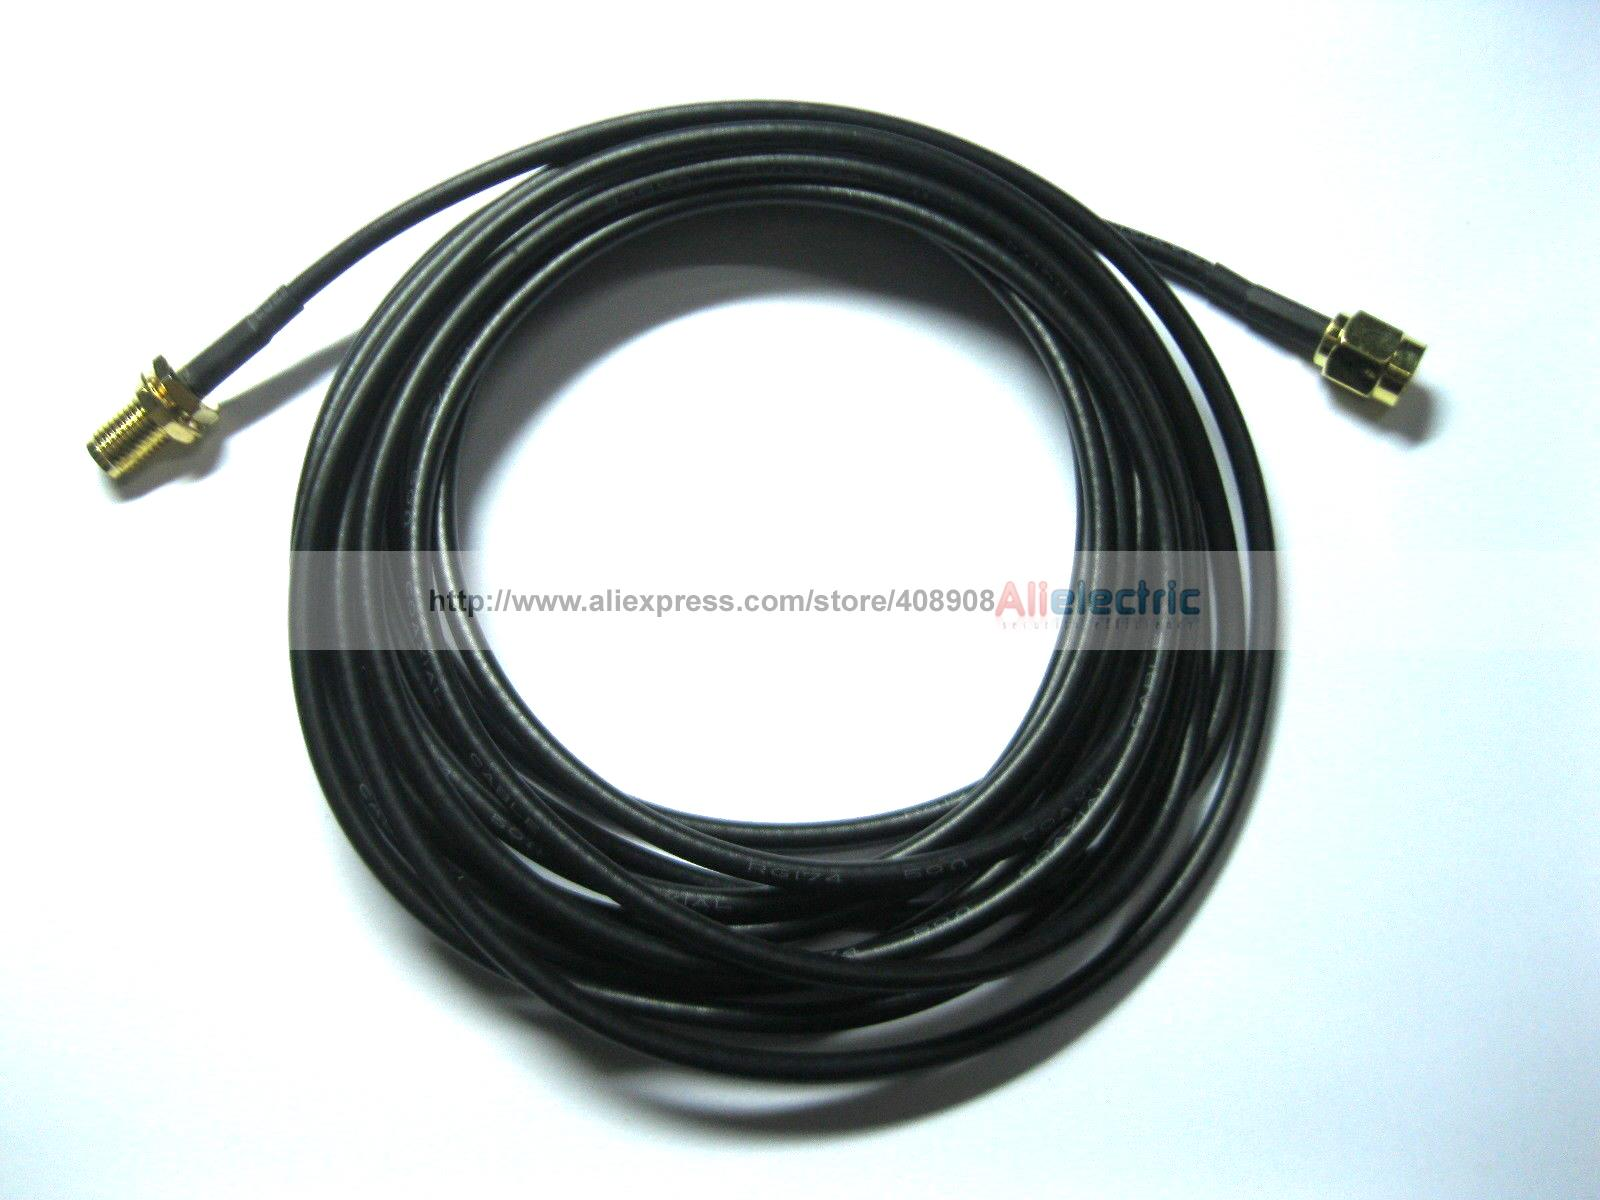 все цены на 5 Pcs 3M Antenna RP SMA Coaxial Cable for WiFi Router Black 300cm онлайн